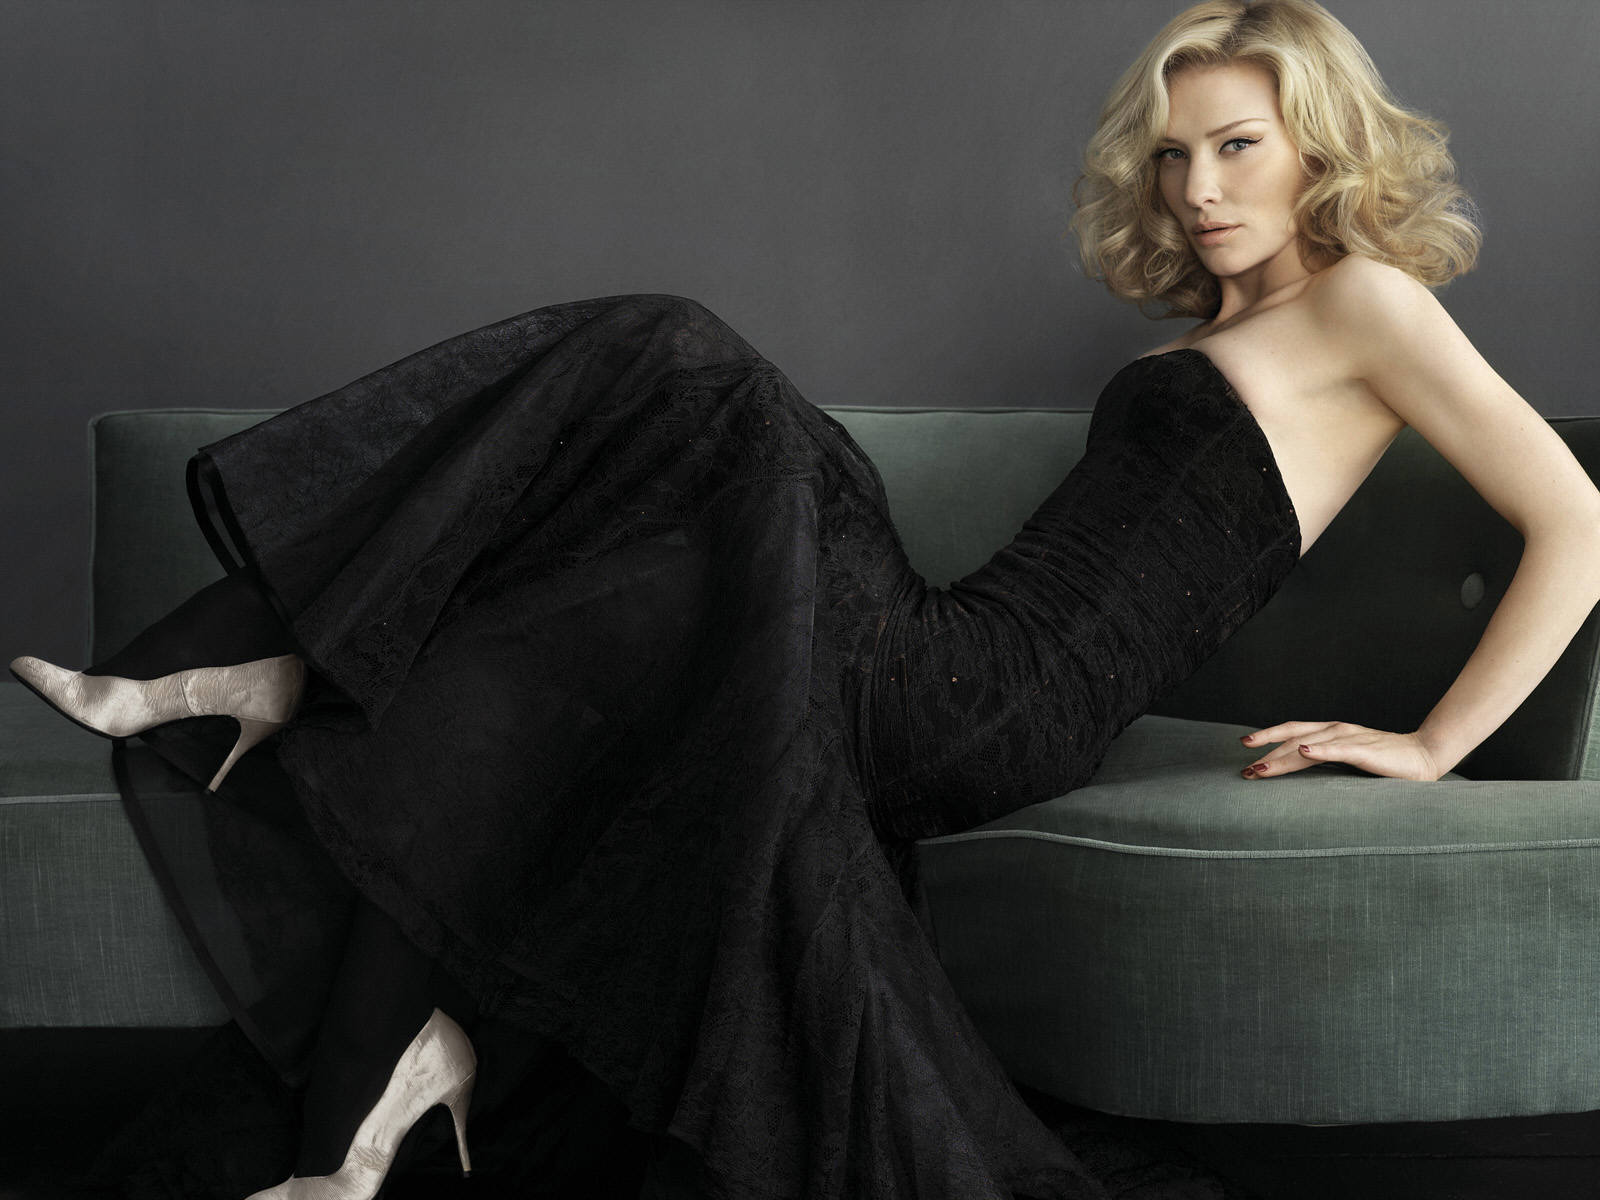 Sexy Cate Blanchett nudes (32 foto and video), Pussy, Sideboobs, Selfie, cleavage 2019